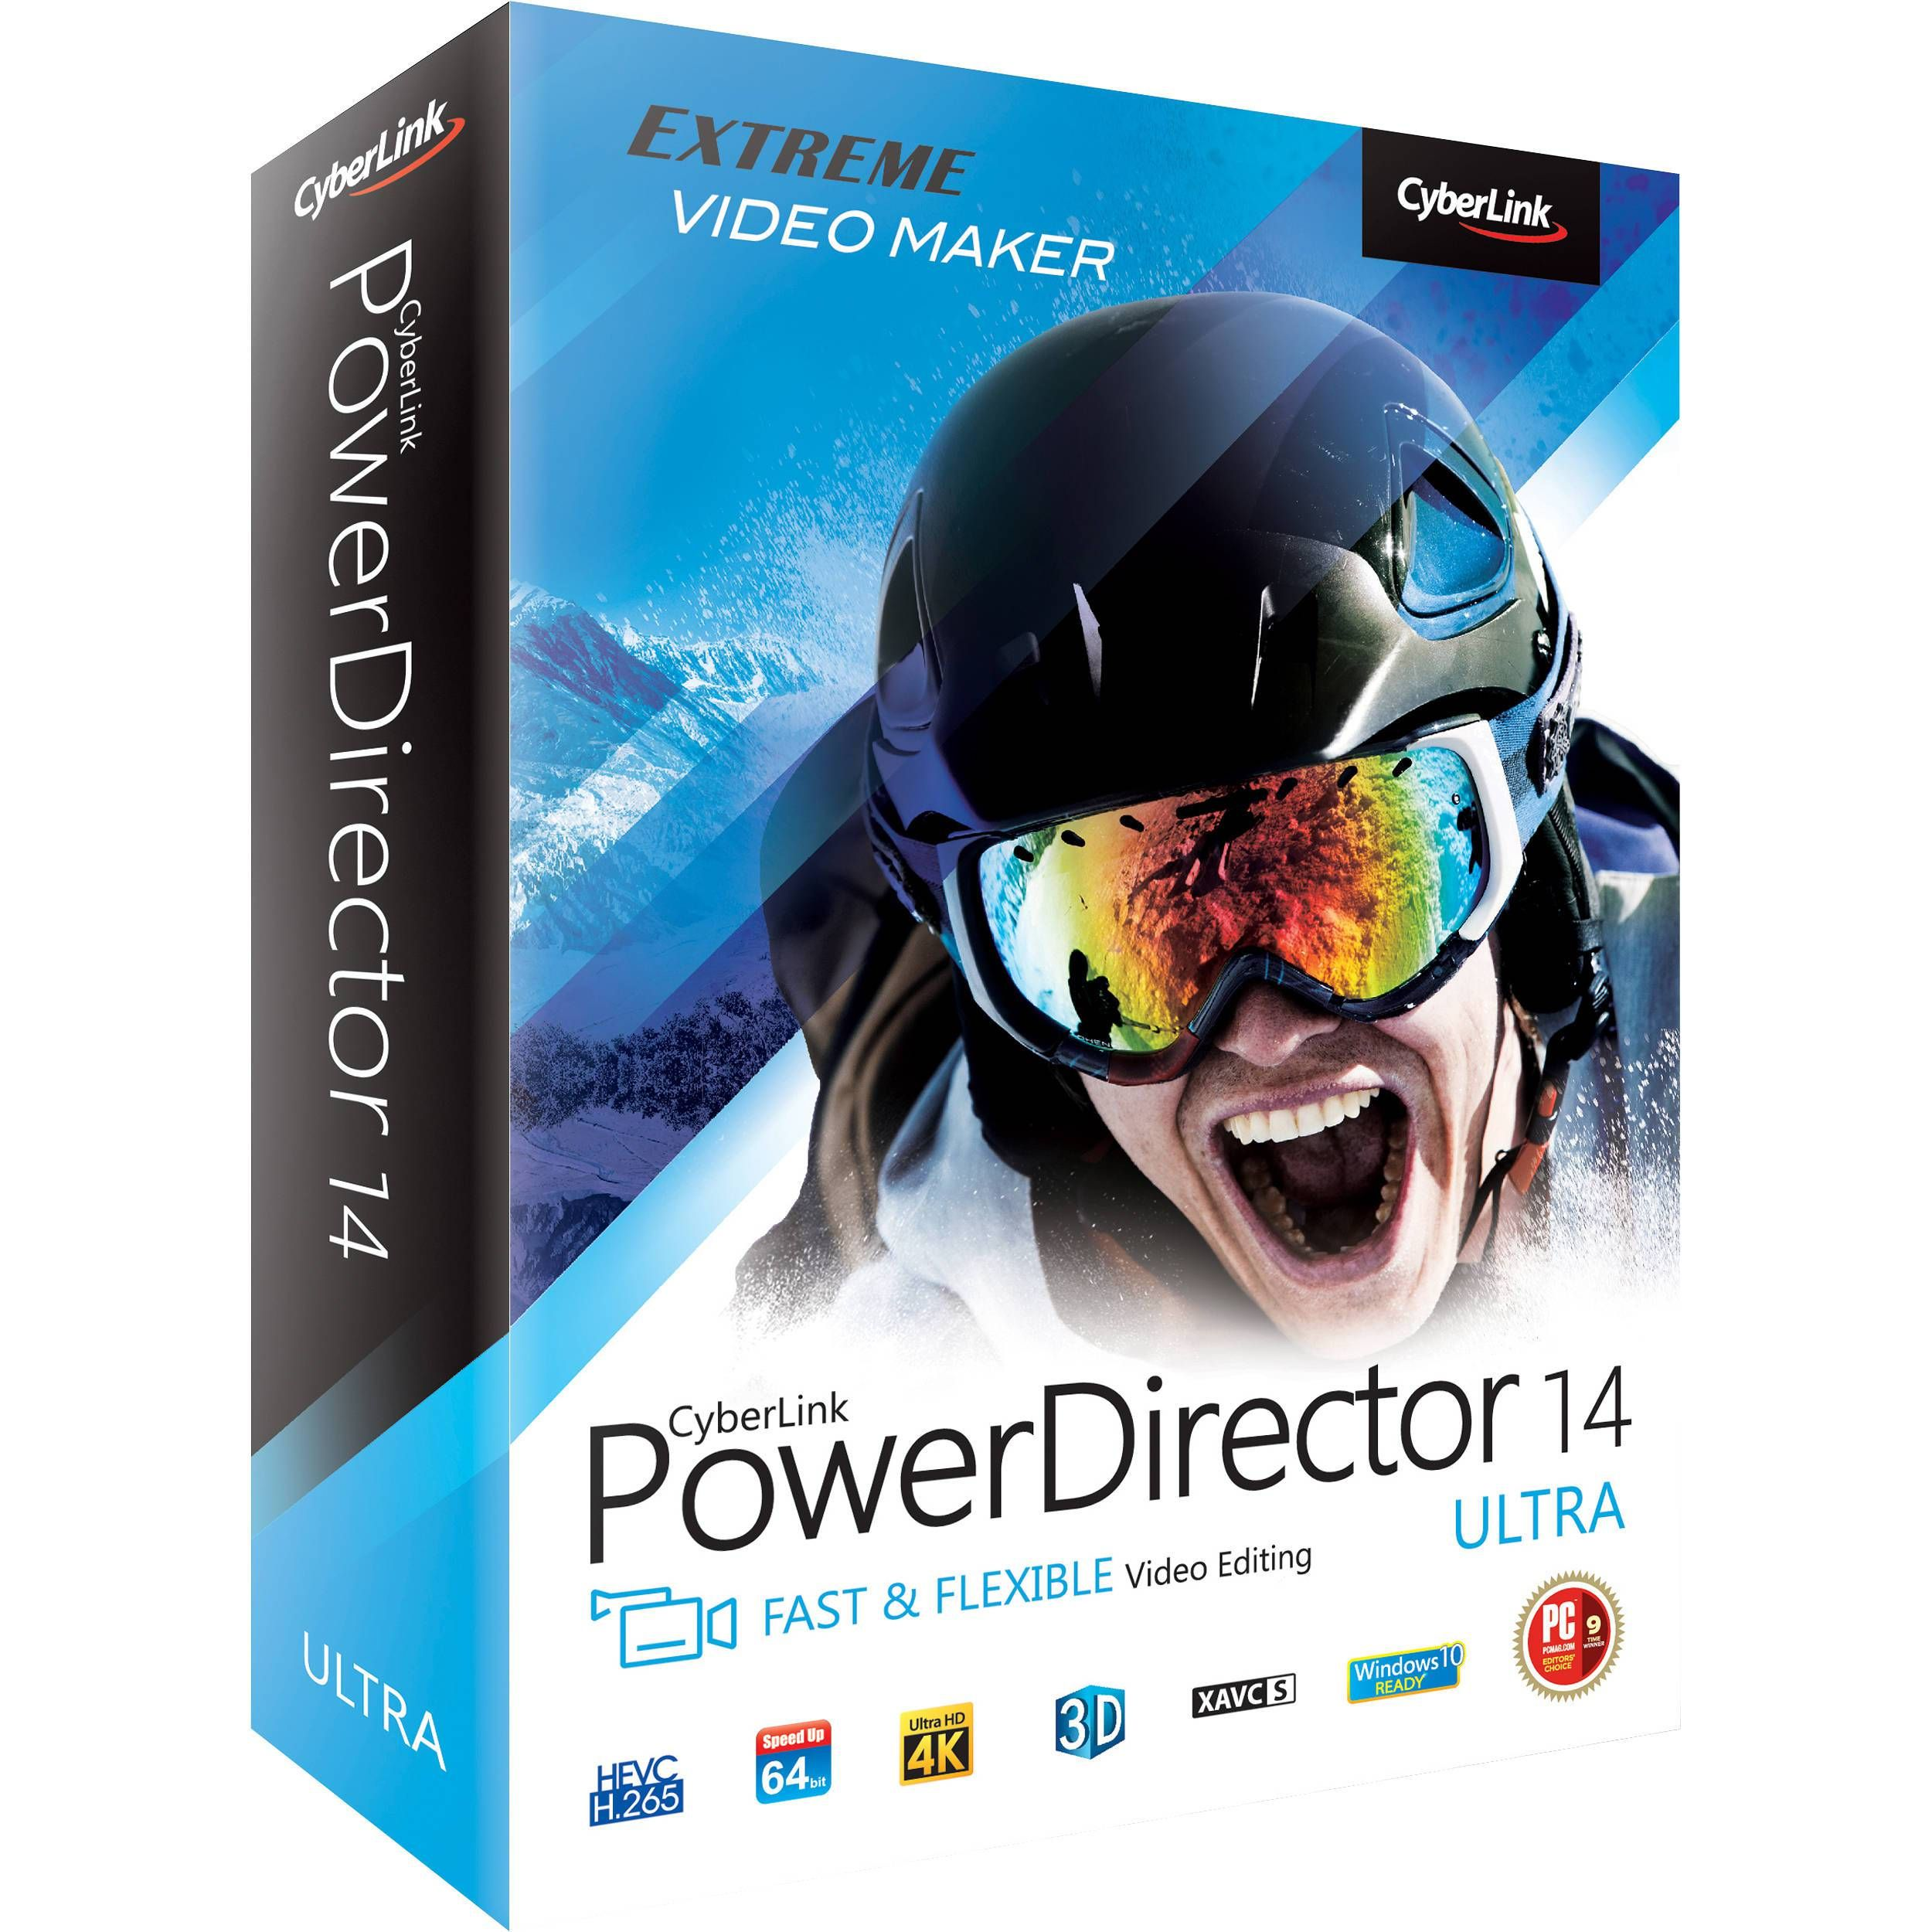 download the latest cyberlink powerdirector 14 crack full free download with complete activation cyberlink powerdirector